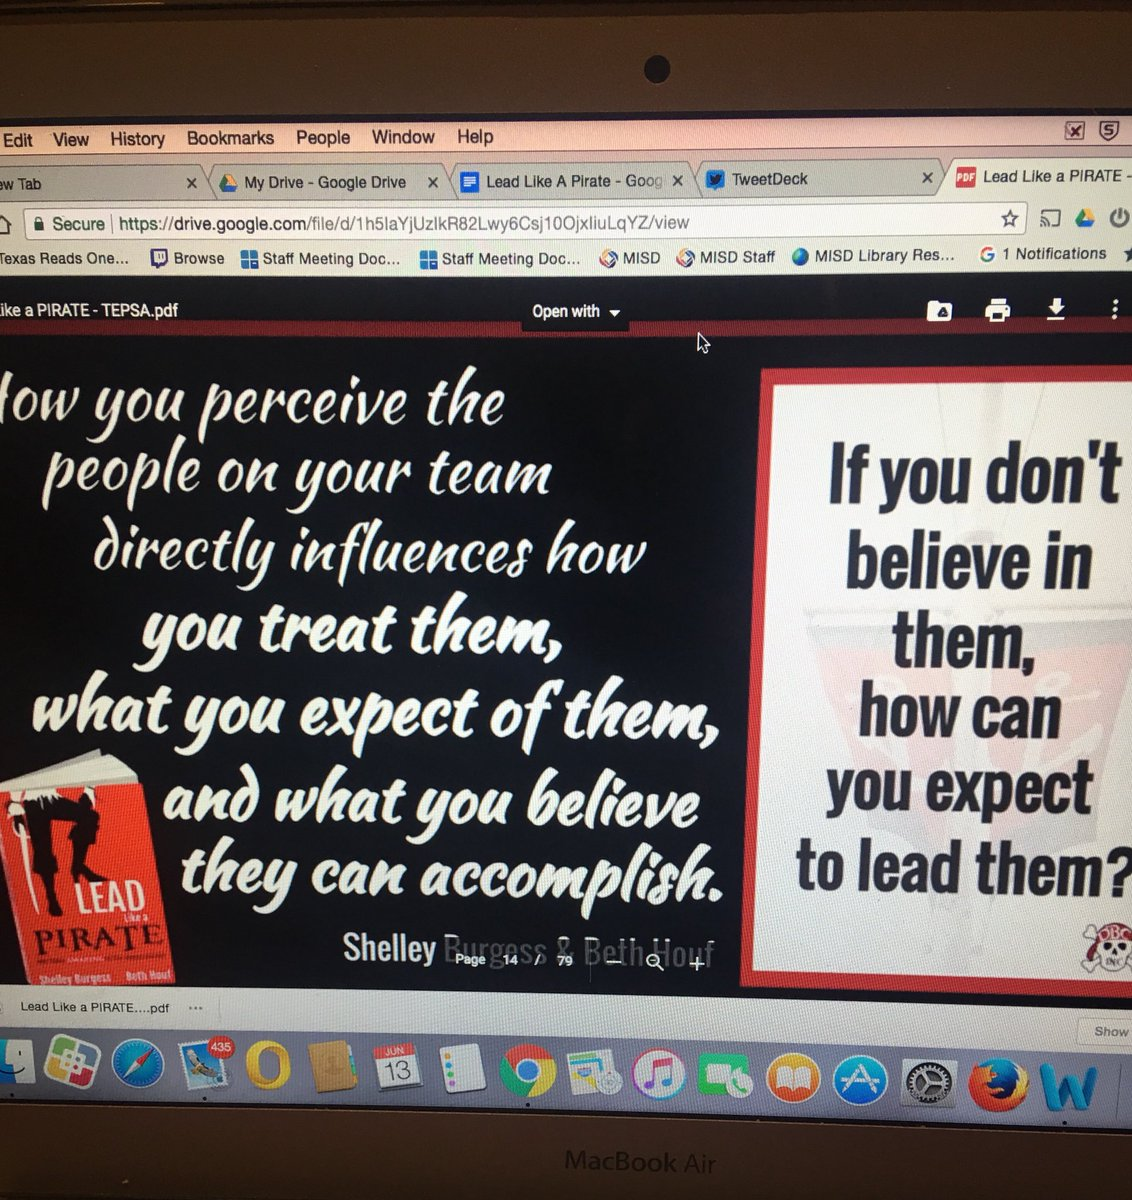 If you don't believe in them, how can you lead them? #TEPSAstrong #LeadLAP @burgess_shelley